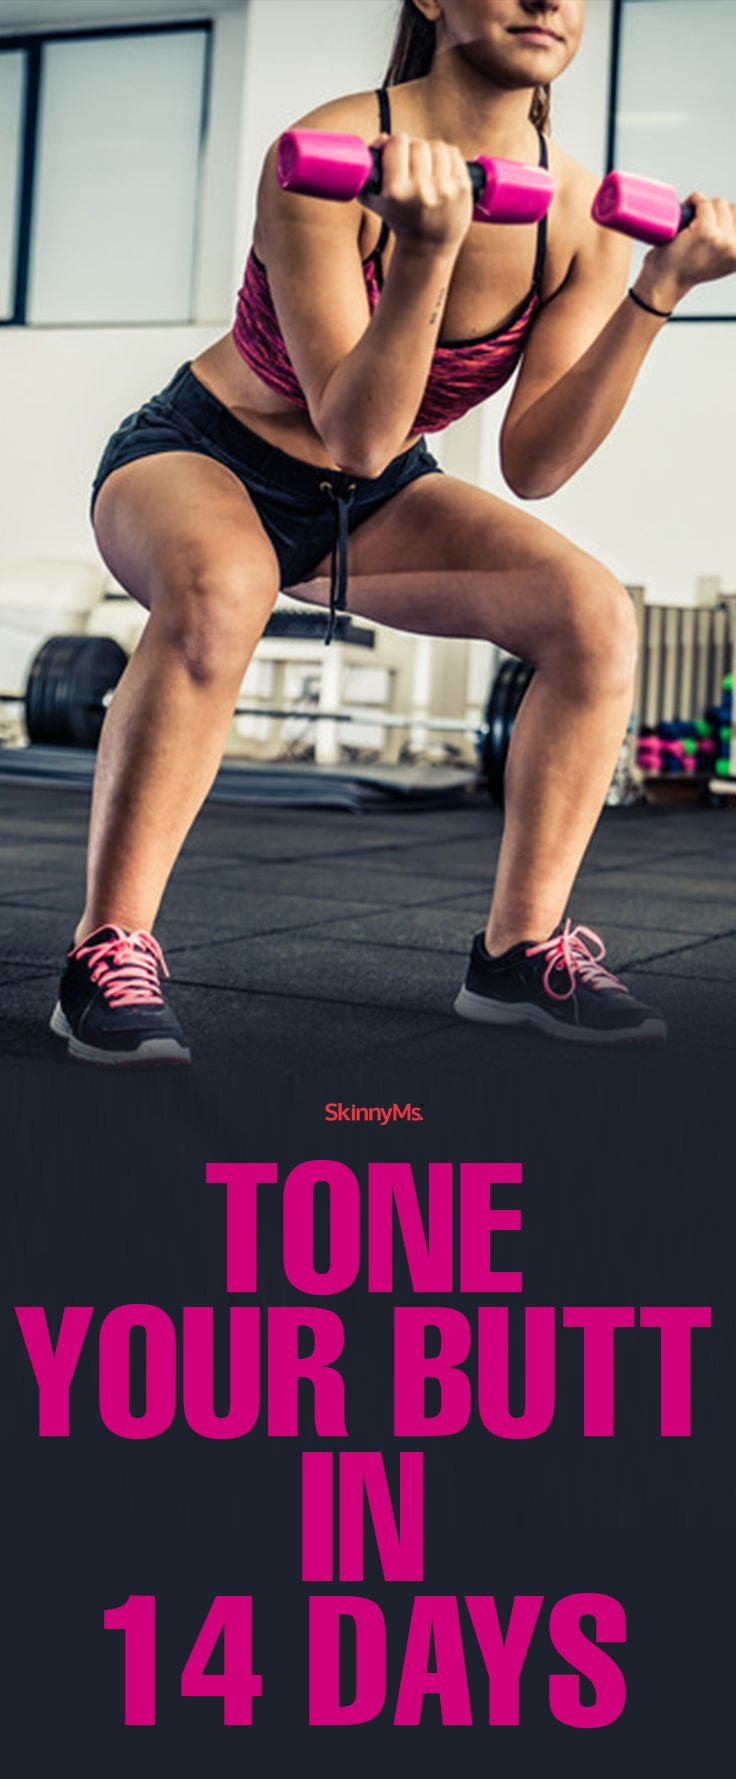 Tone Your Butt in just 14 Days!